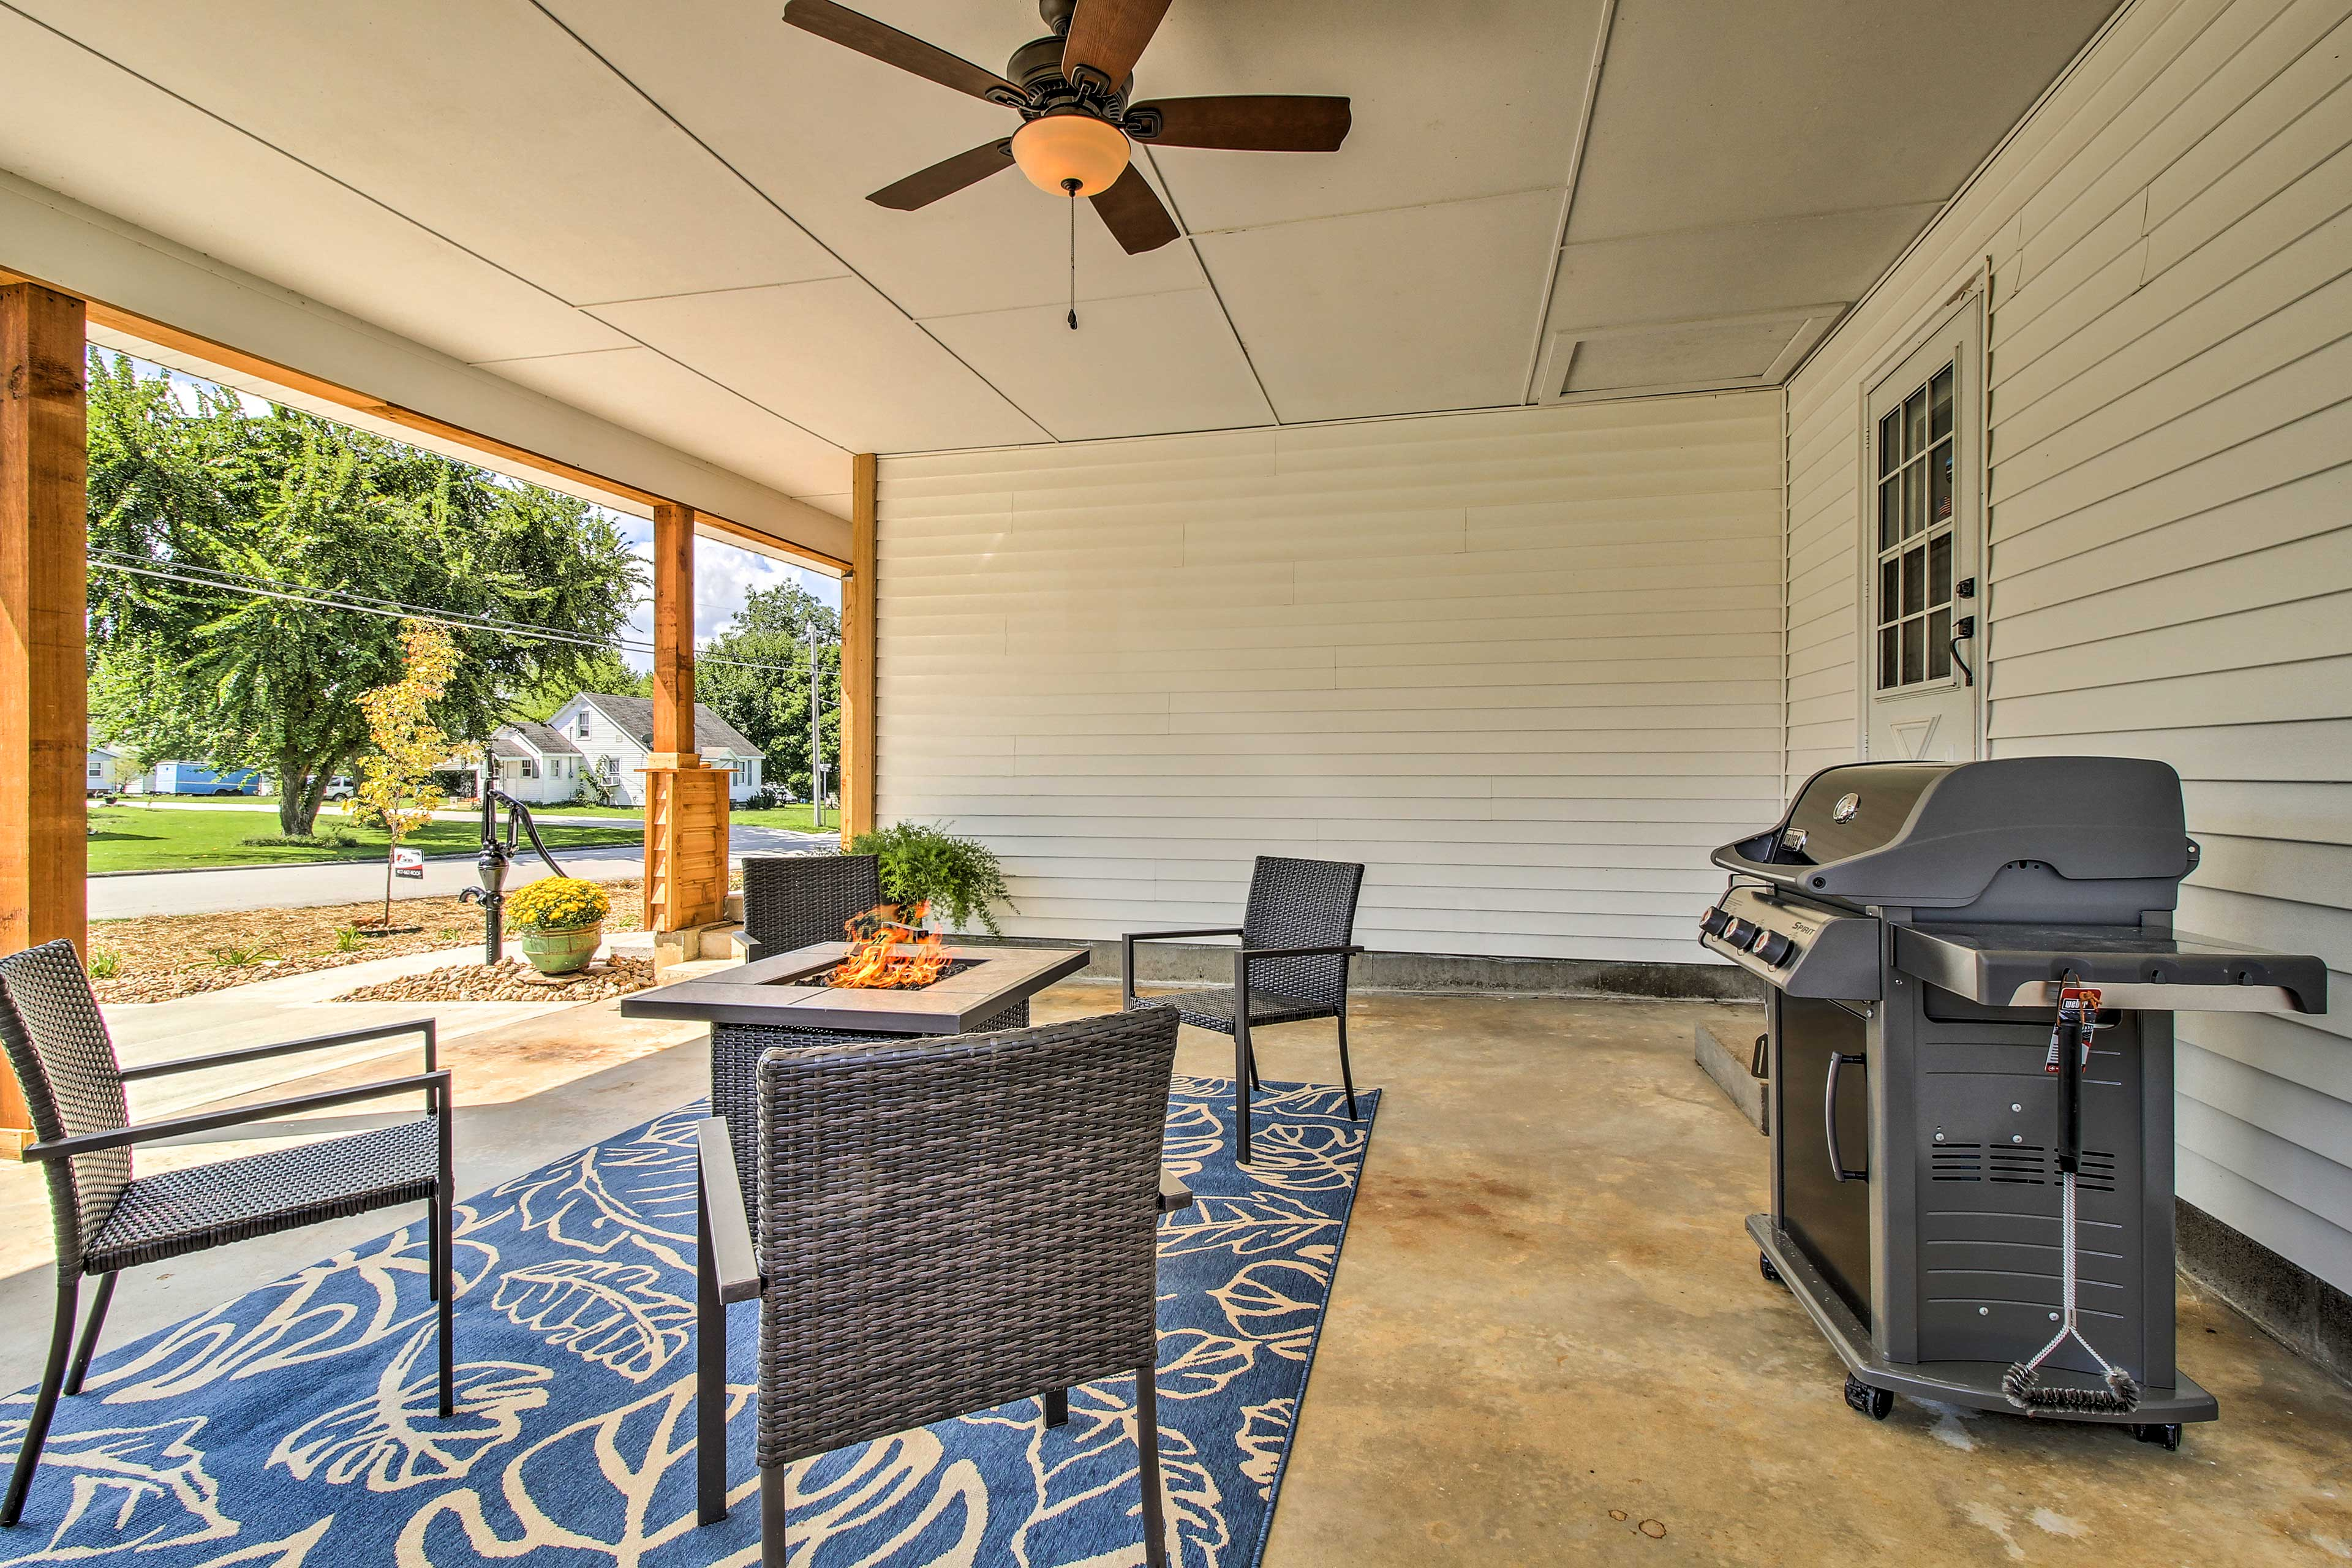 The outdoor space includes seating, a fire pit and a gas grill!